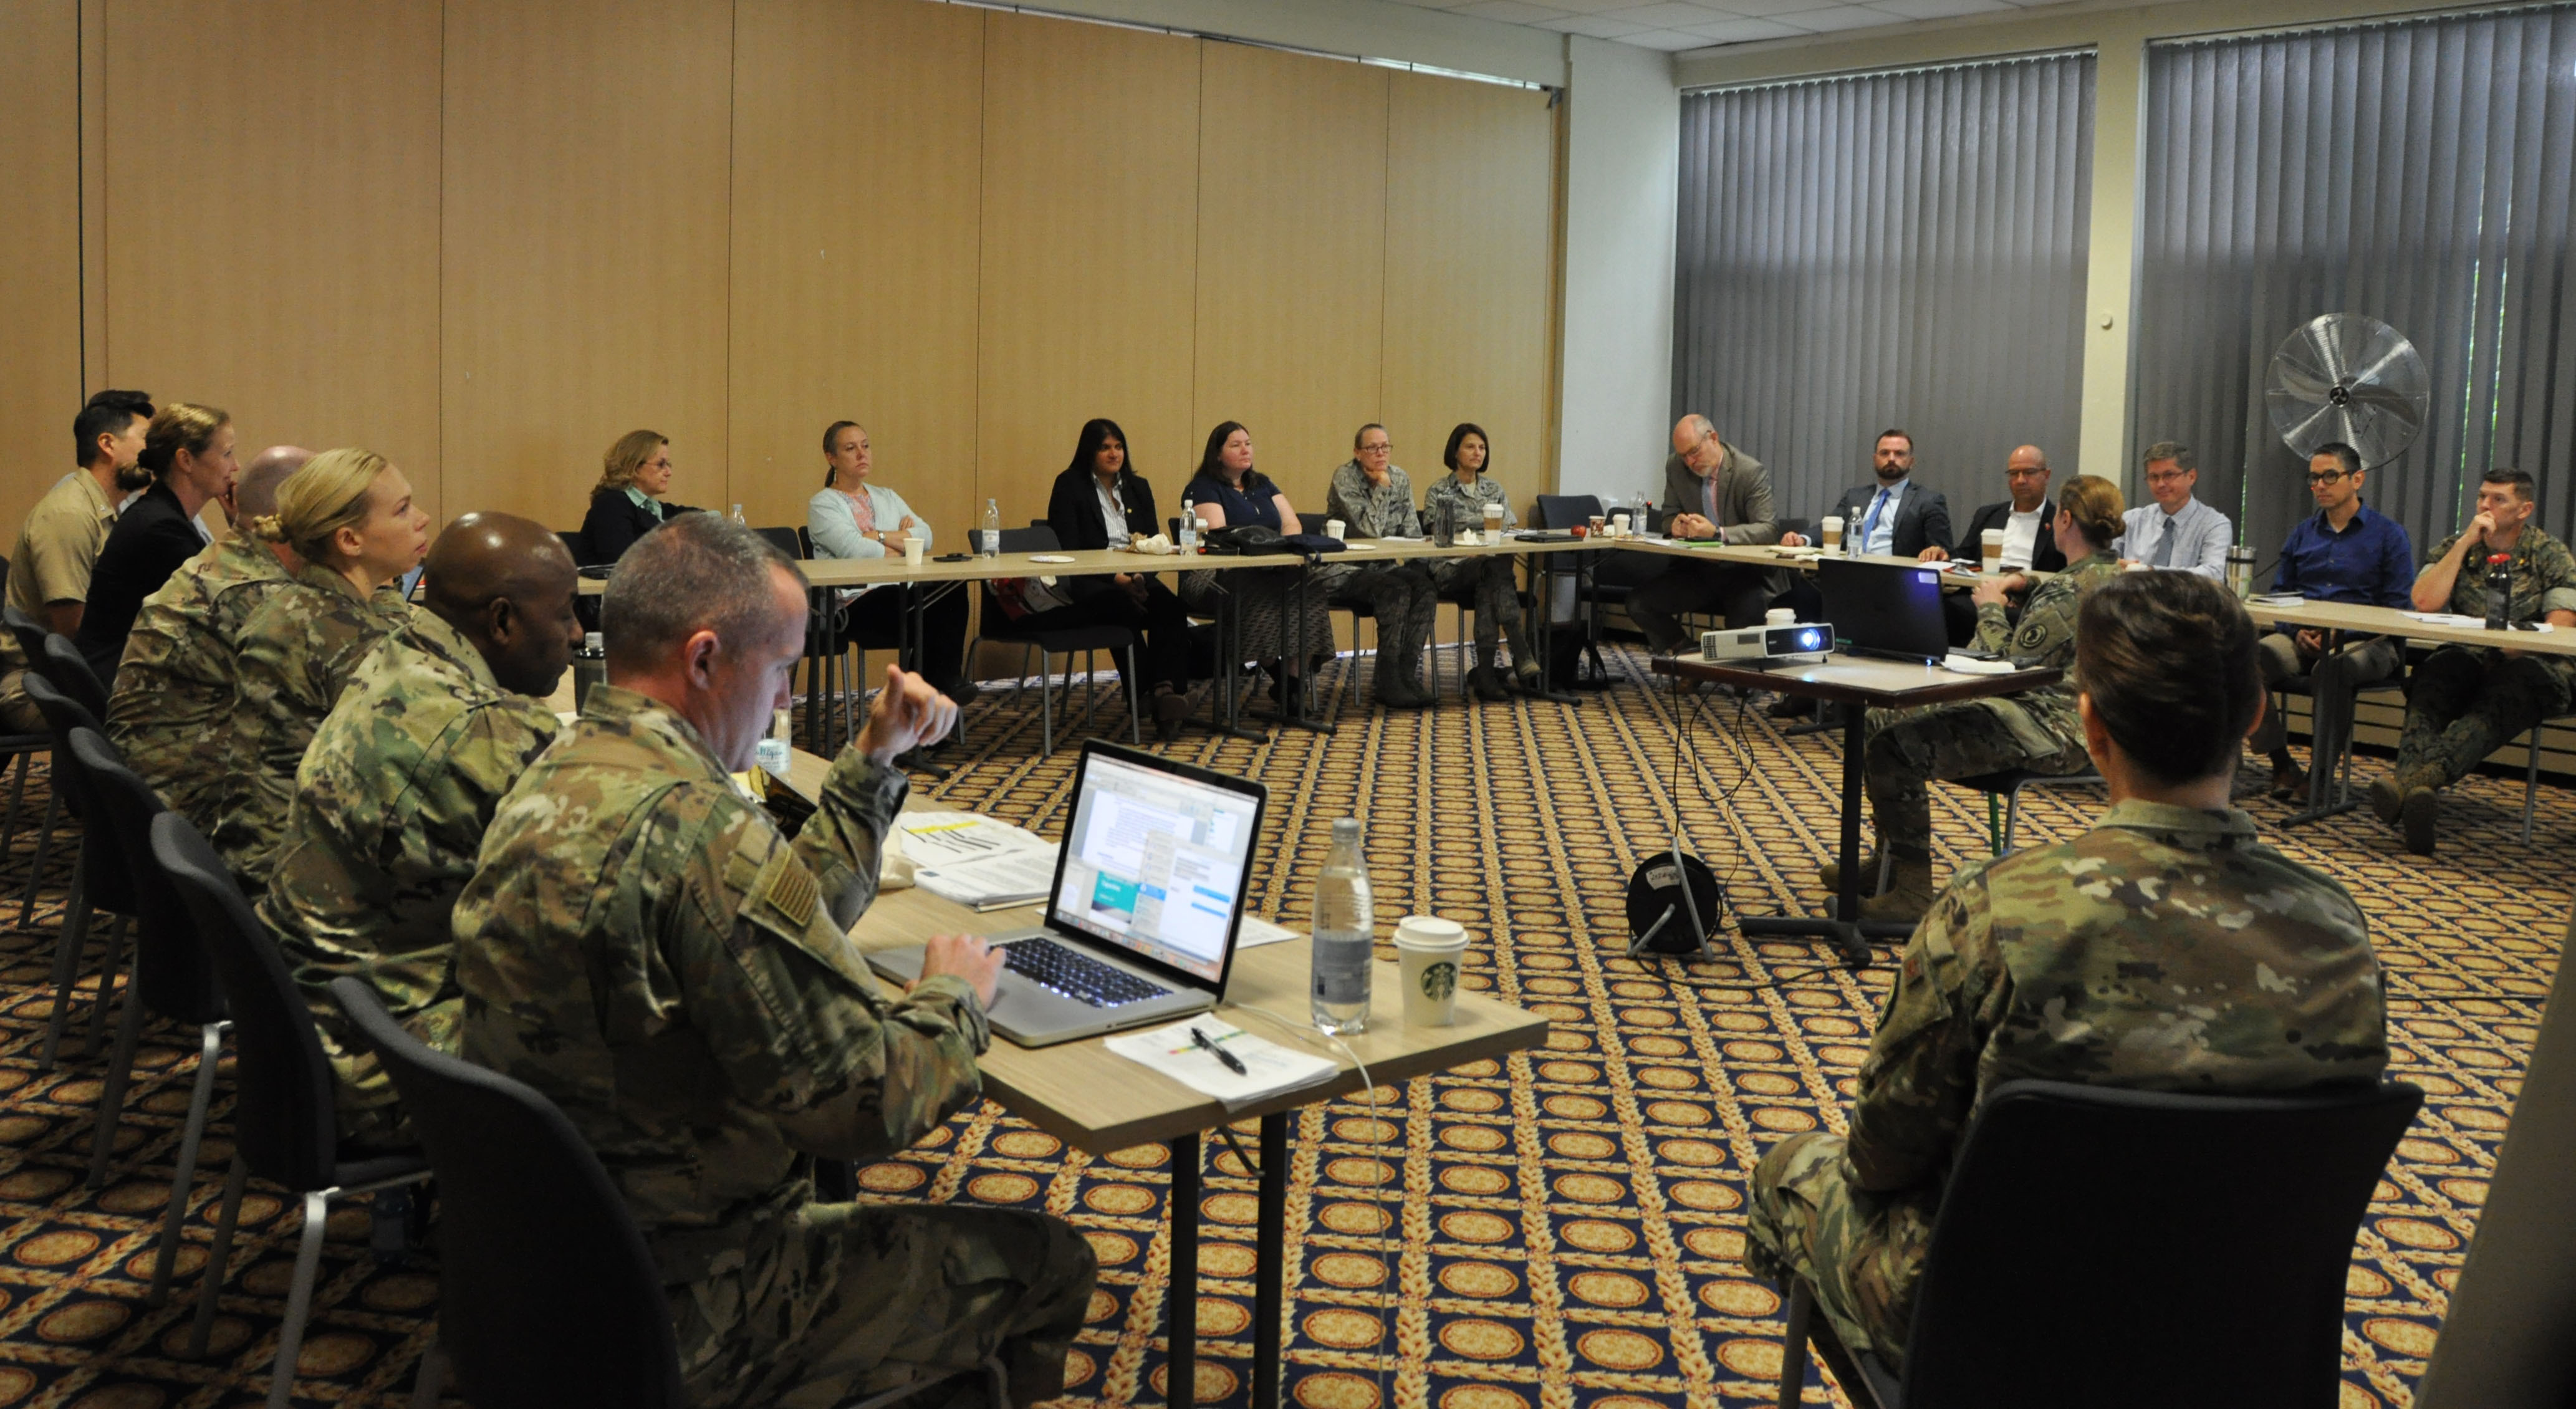 The AFRICOM Office of the Command Surgeon hosted various U.S. agencies during the first ever Infectious Disease Strategic Planning Workshop on Patch Barracks in Stuttgart, Germany, from Sept. 4-6, 2019. The workshop was developed to discuss U.S. government efforts pertaining to infectious disease prevention and response in Africa and included interagency support from the Centers for Disease Control and Prevention, the U.S. Agency for International Development, U.S. Department of State and combat support agency, the Defense Threat Reduction Agency. The workshop will better enable U.S. AFIRCOM to operationalize the U.S. AFRICOM Theater Campaign Plan by modifying their Security Force Assistance strategy. (U.S. Air Force photo by Master Sgt. Megan Crusher)